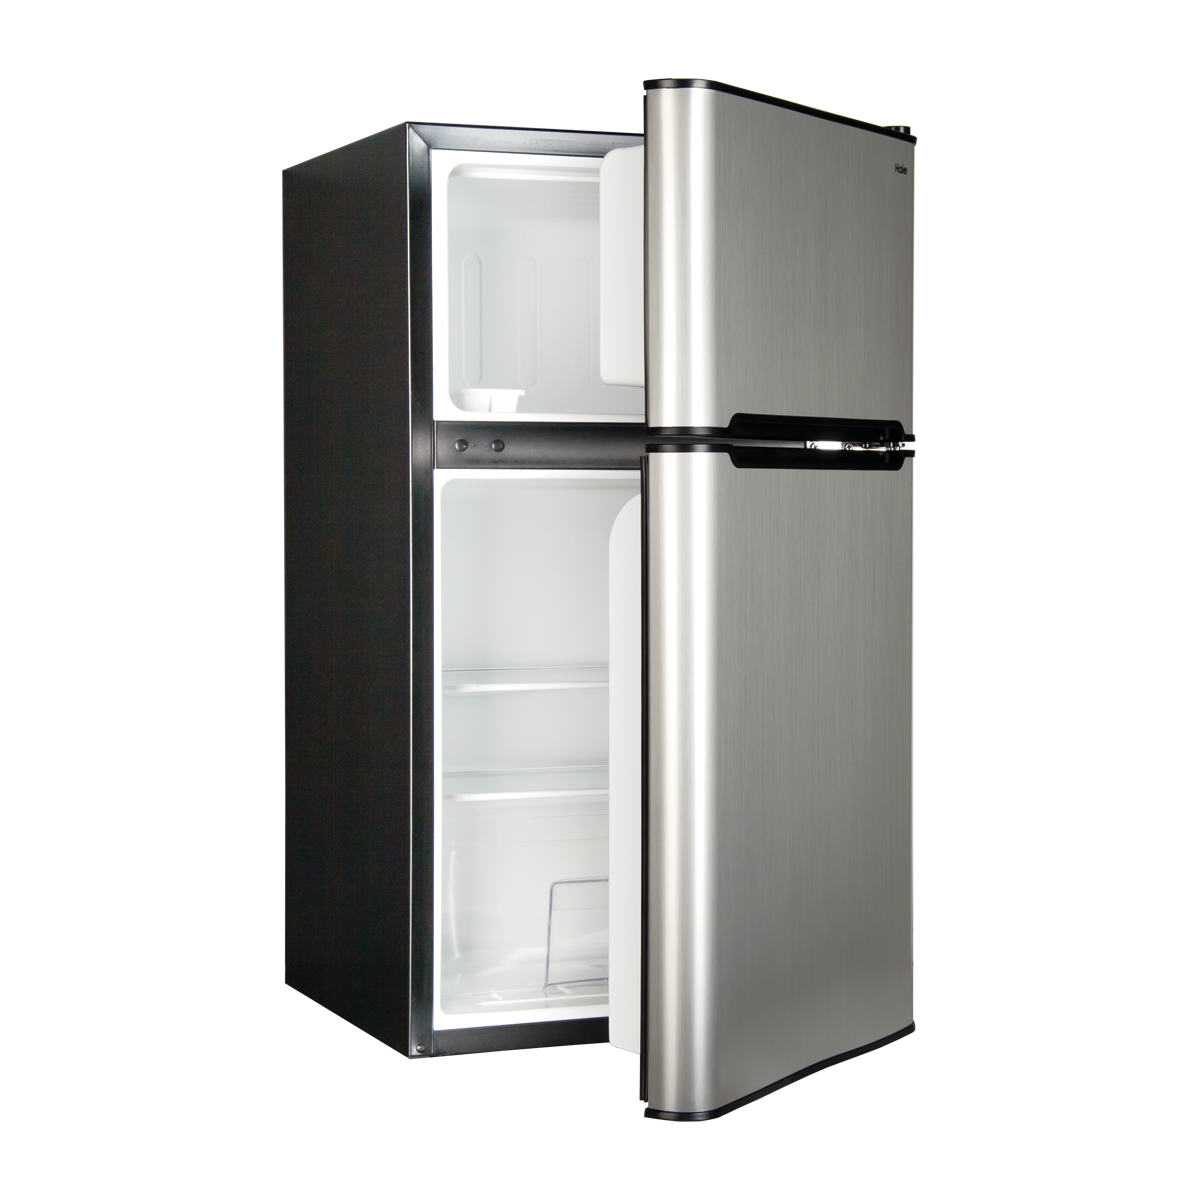 Refrigerator png images free. Fridge clipart closed